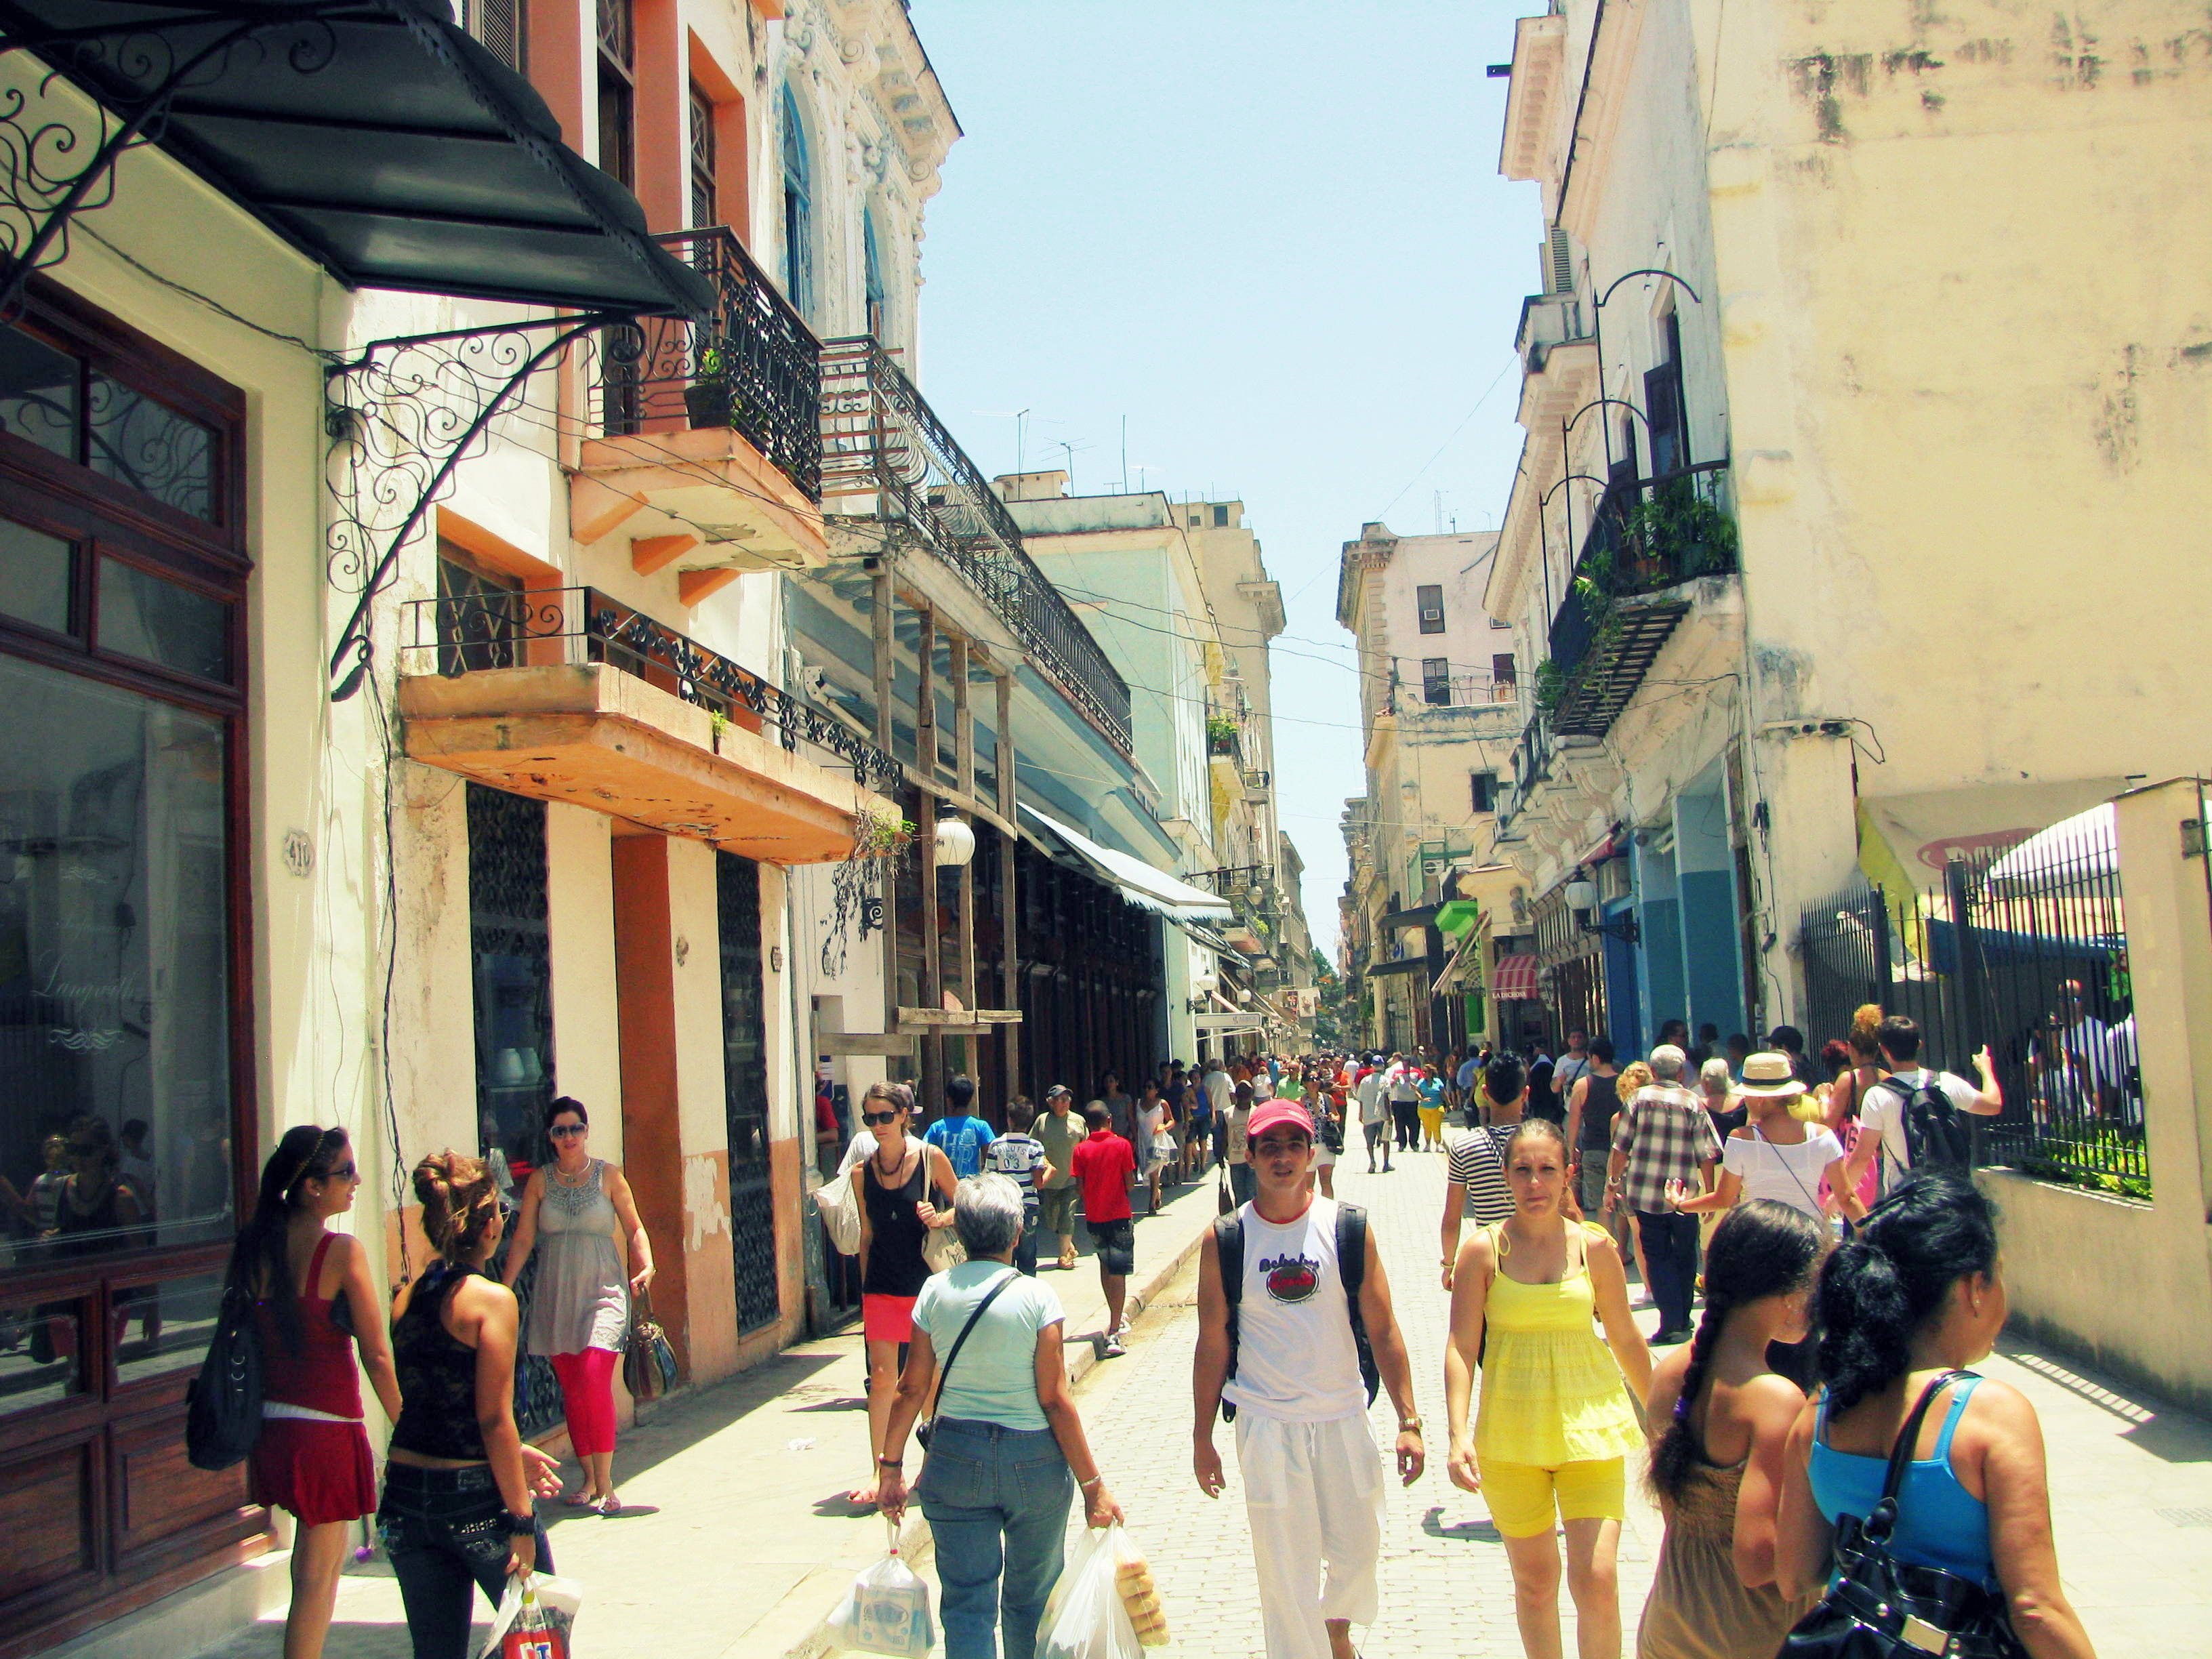 During the last year Cuba was visited by over 3 million international tourists.